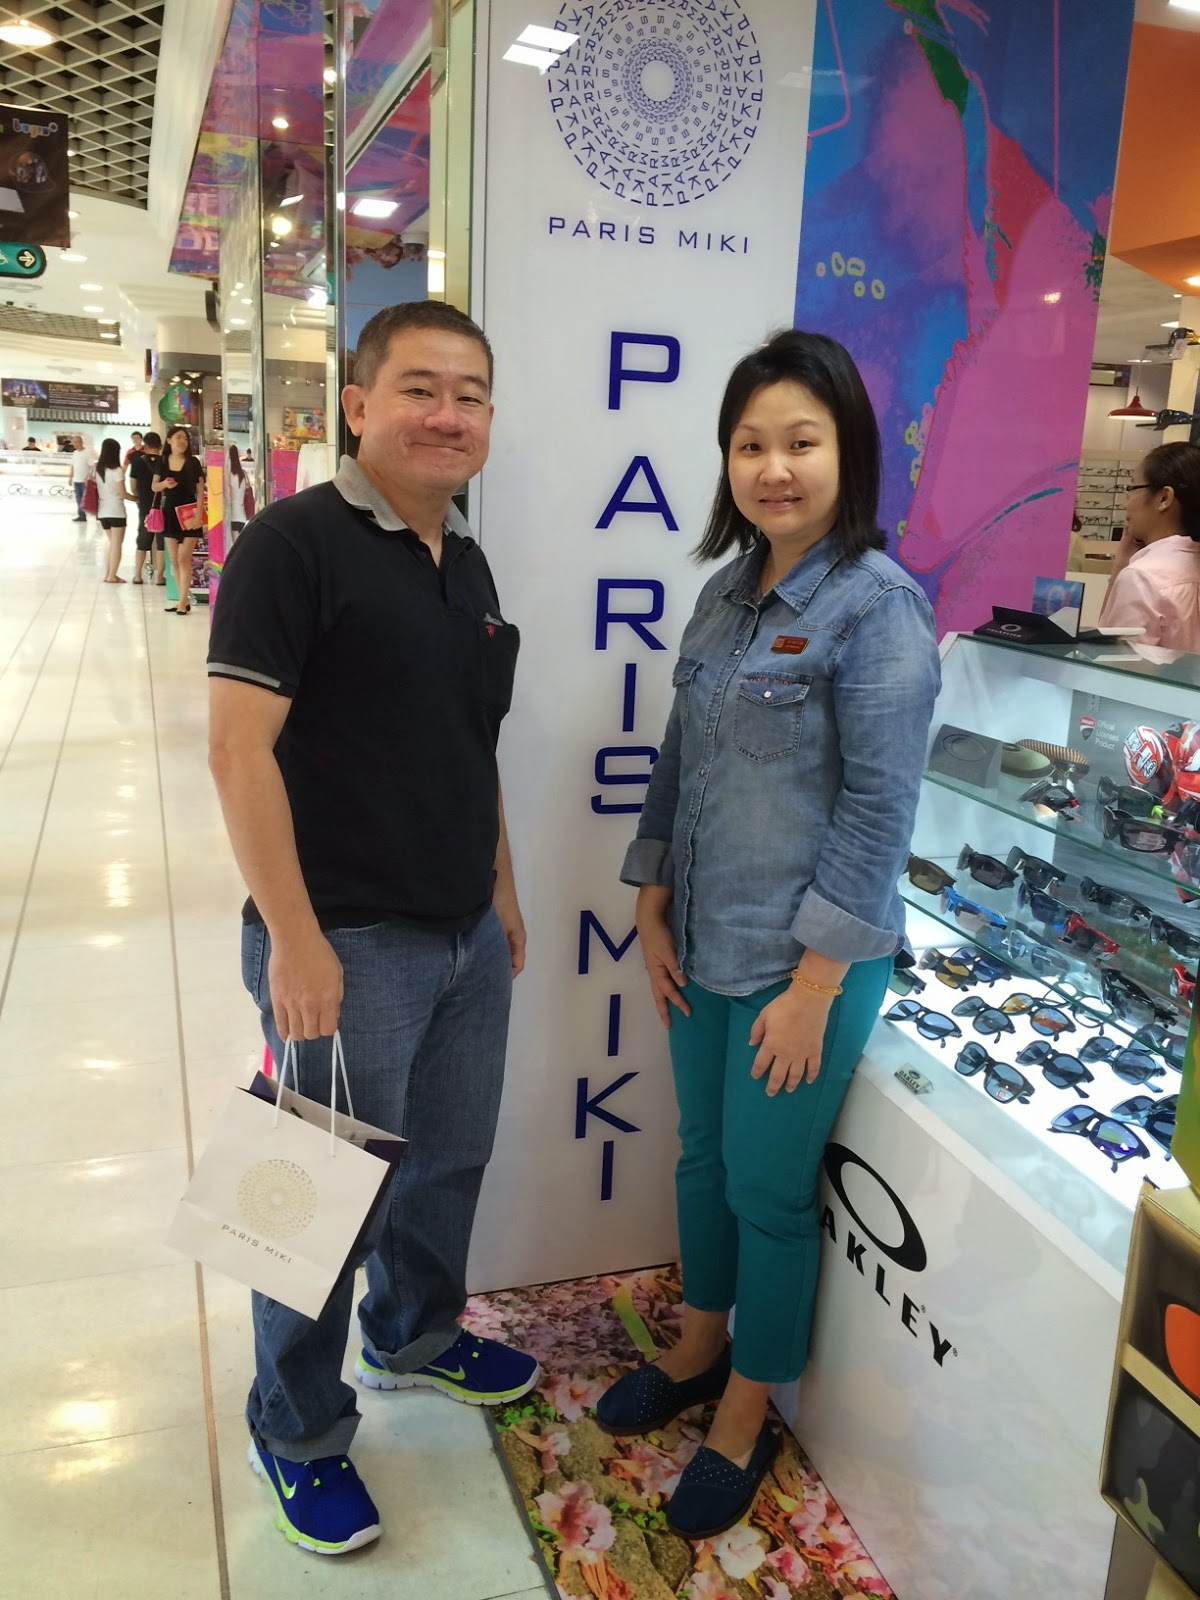 Coopervision multi-focal contact lenses at Paris Miki